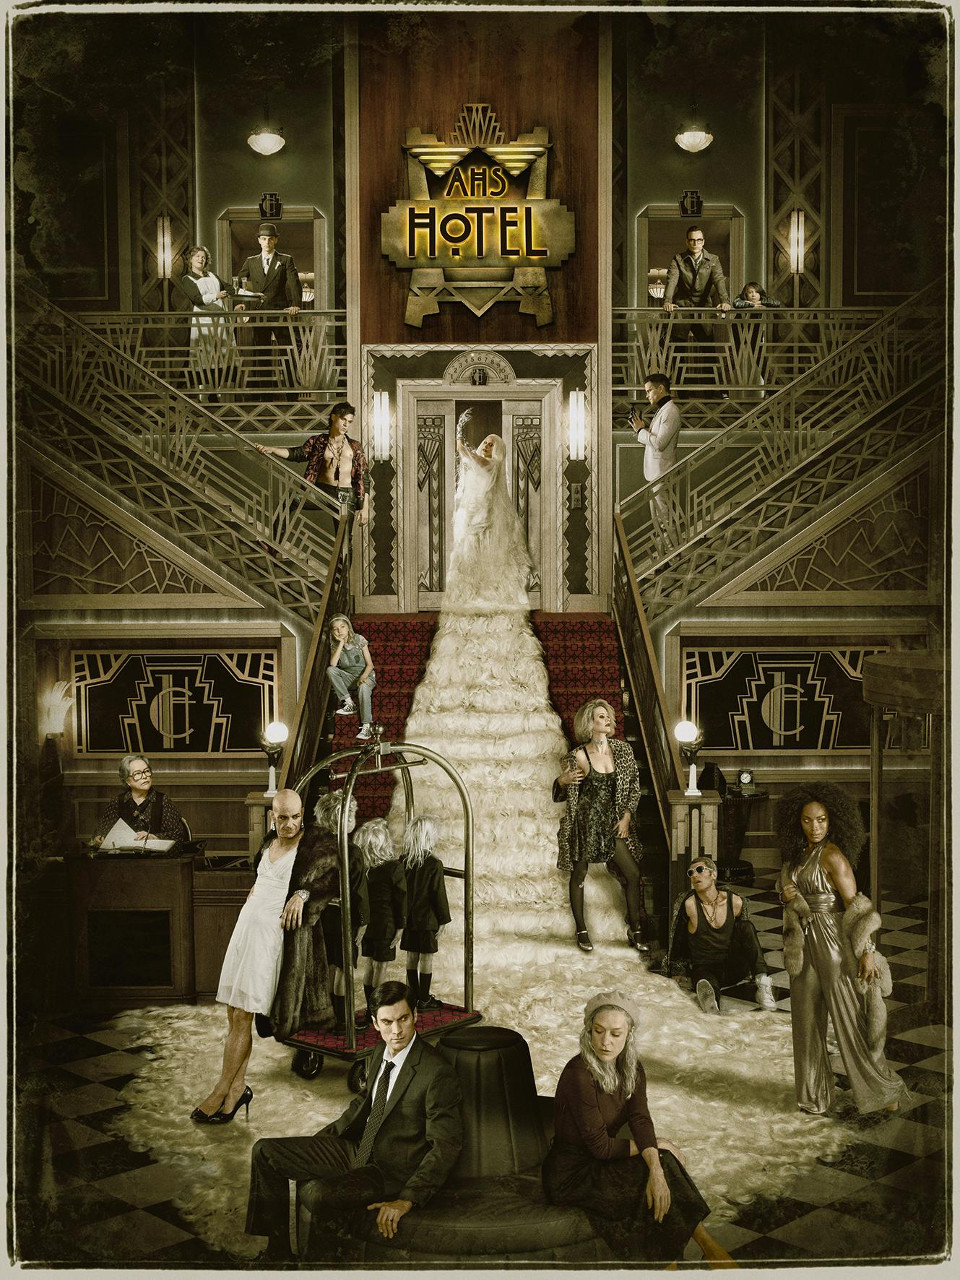 American Horror Story: HotelKey art featuring cast